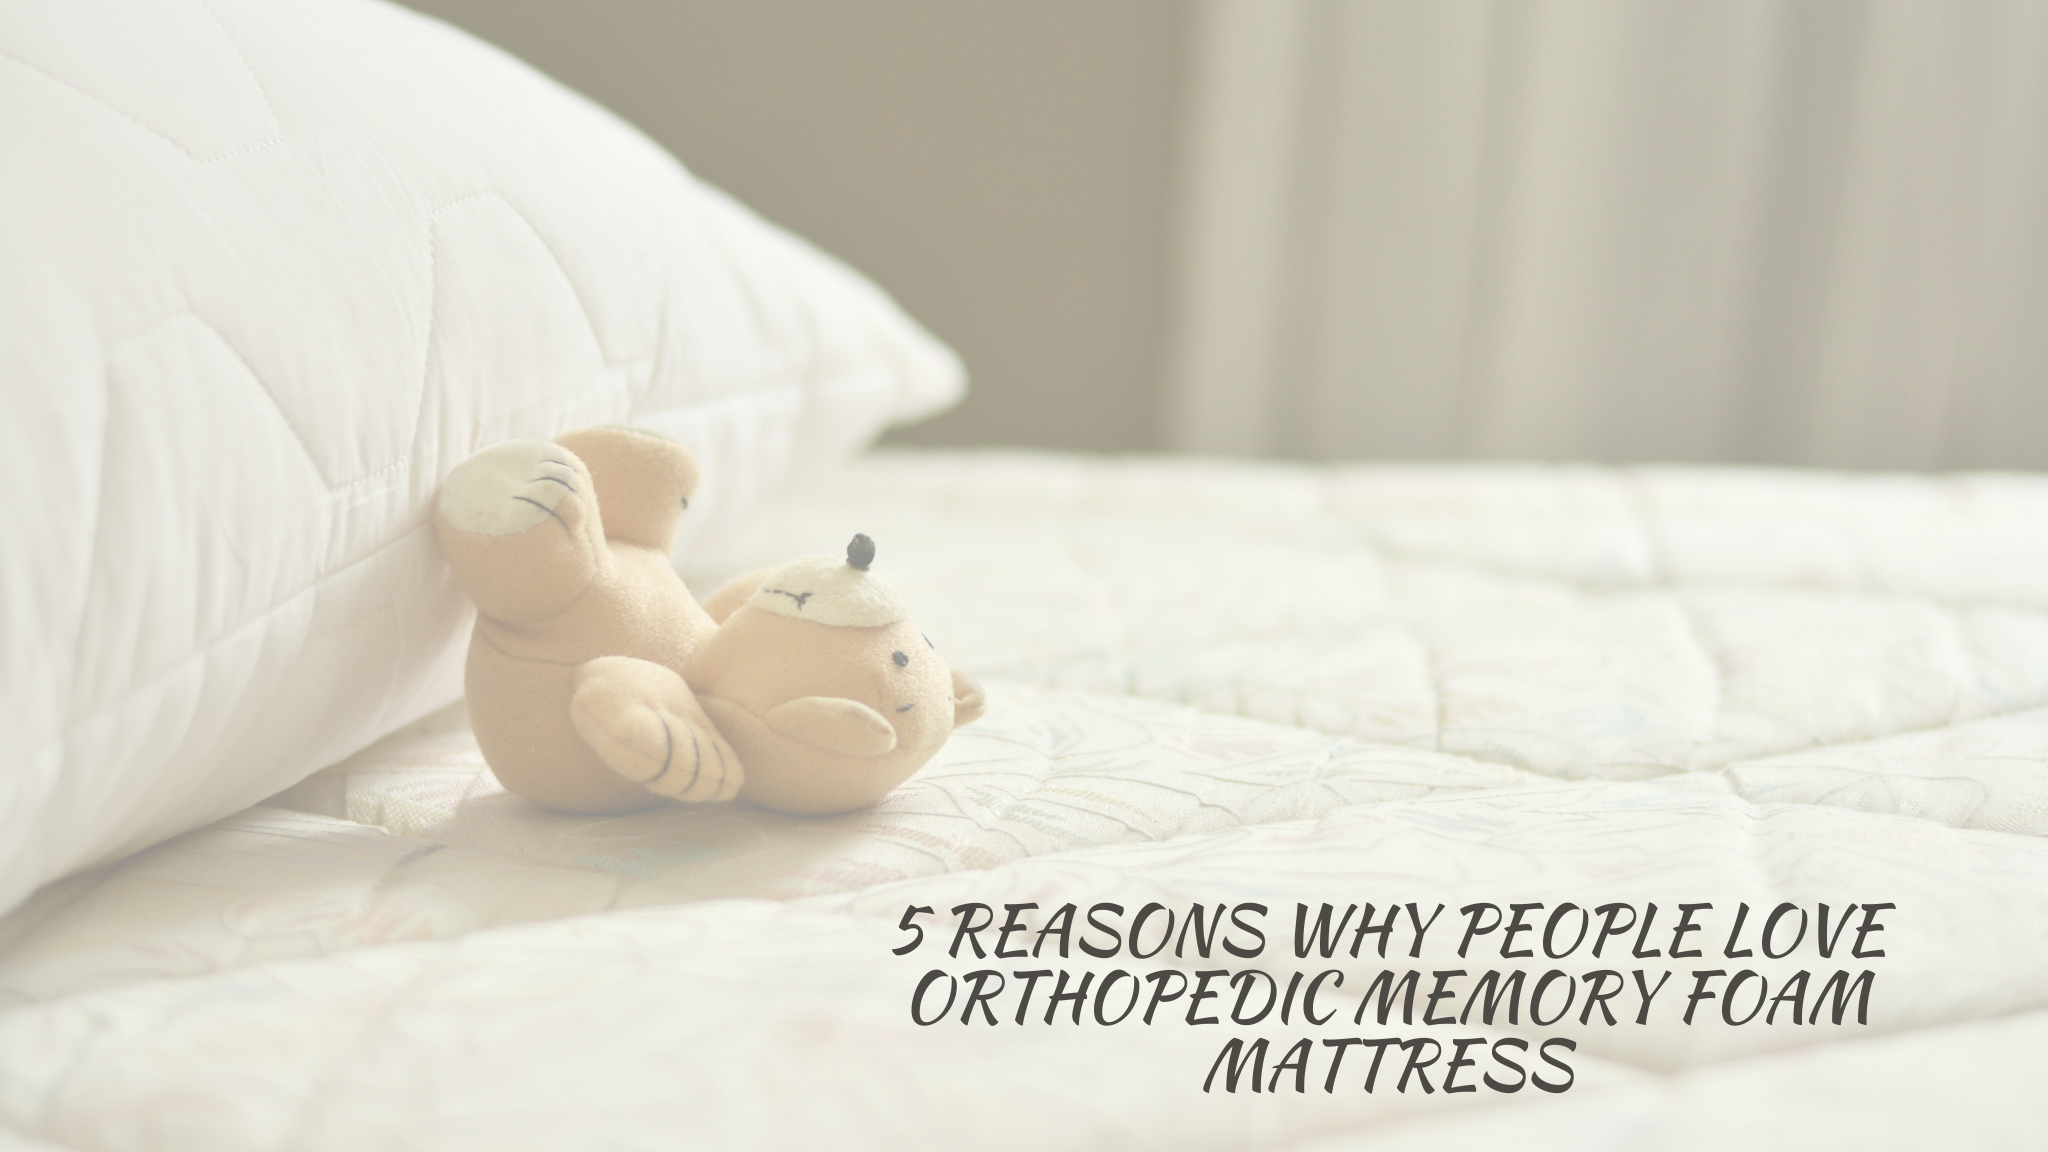 5 Reasons Why People Love Orthopedic Memory Foam Mattress